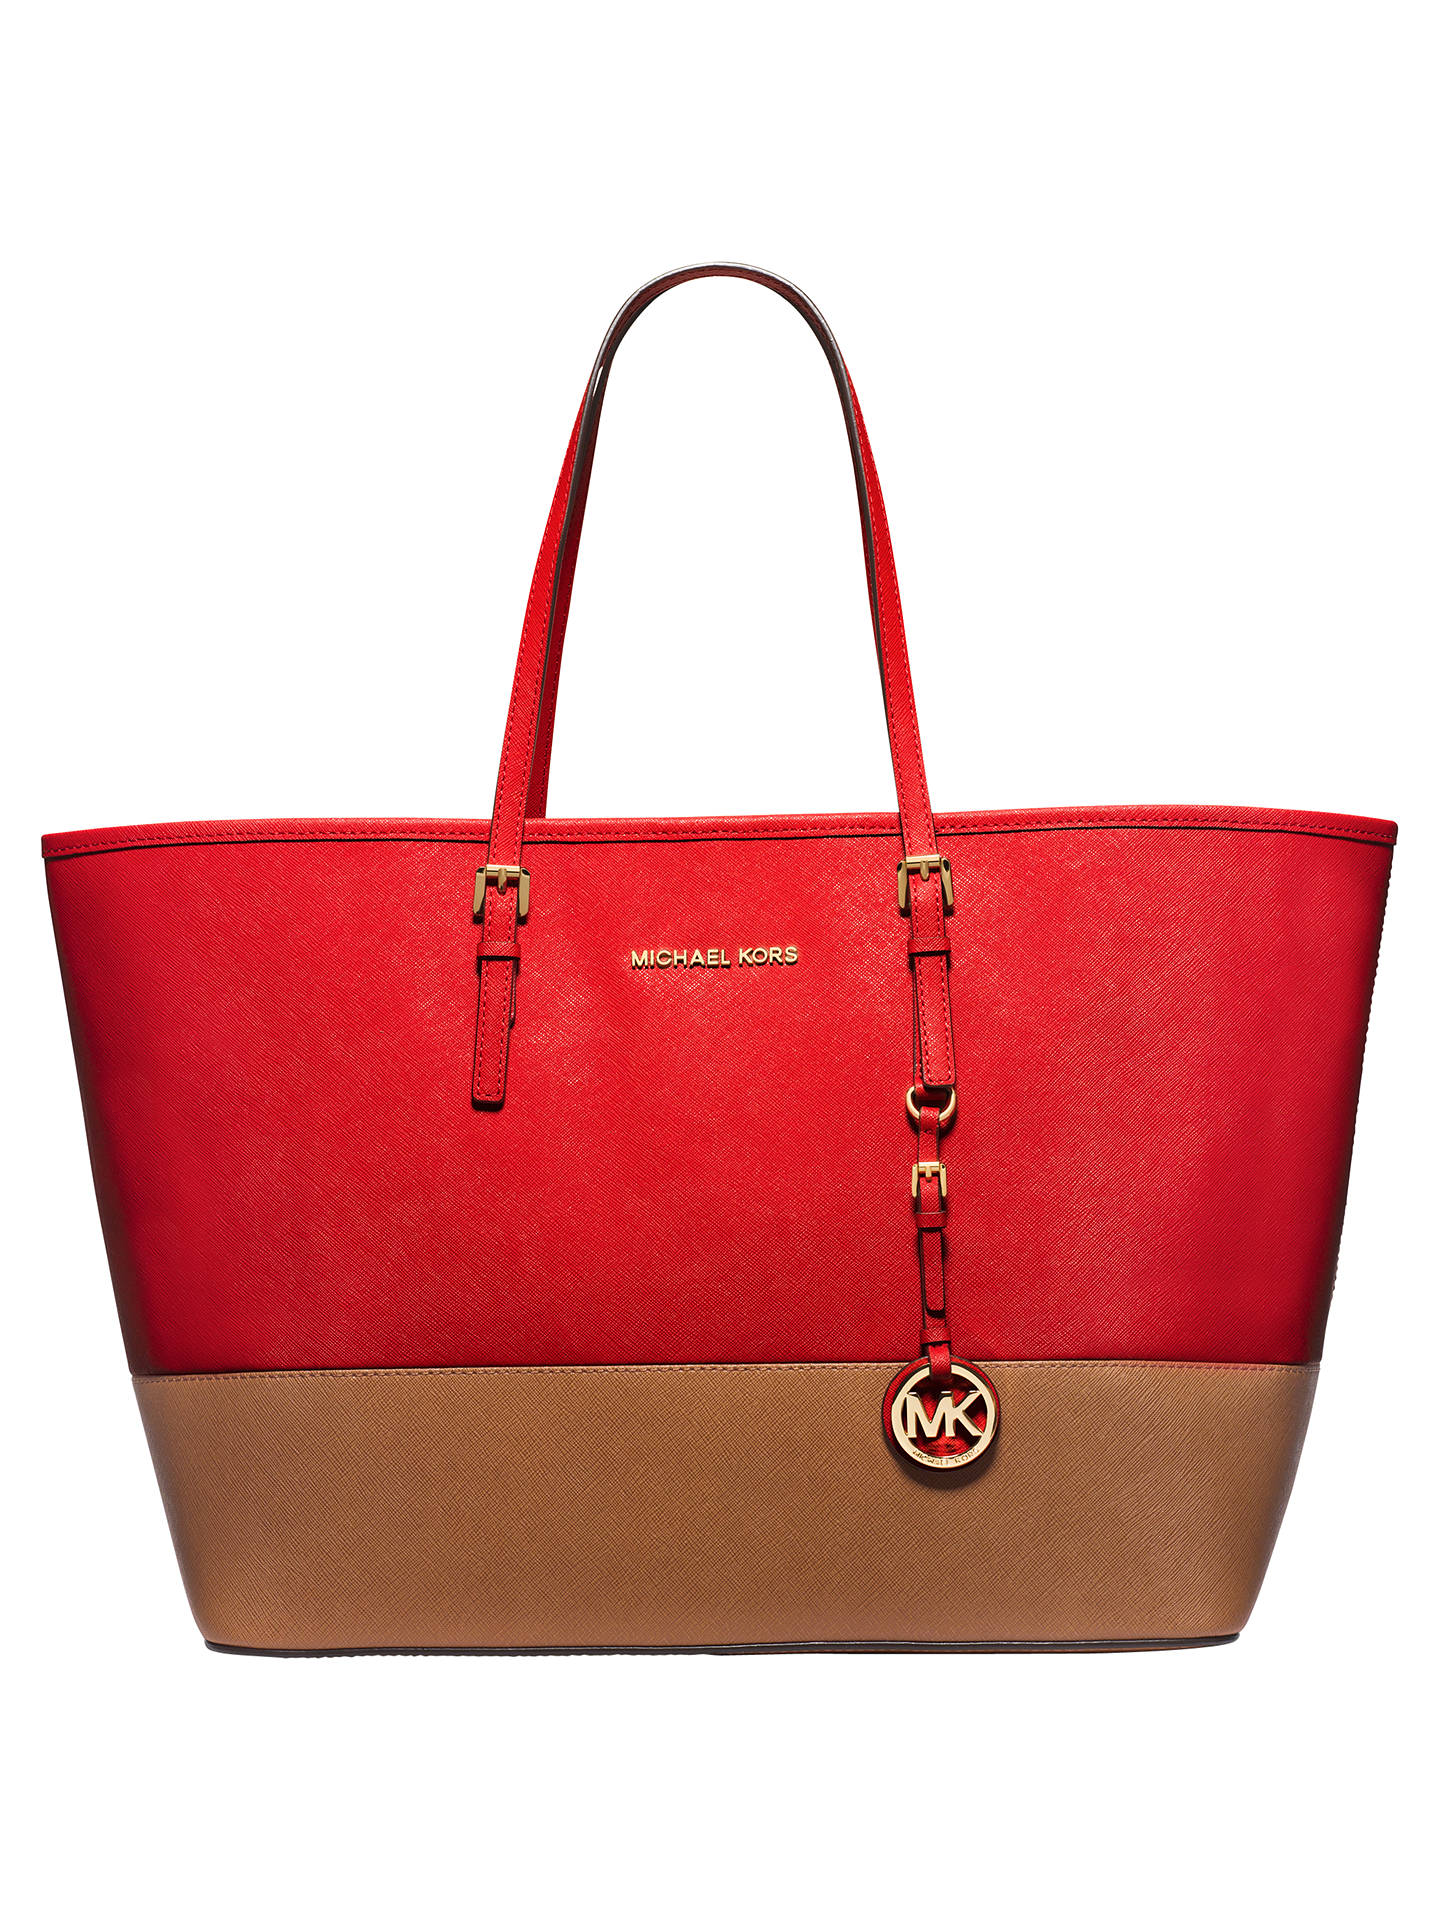 8961f802dbf4 Buy MICHAEL Michael Kors Jet Set Travel Color Block Medium Saffiano Leather  Tote Bag